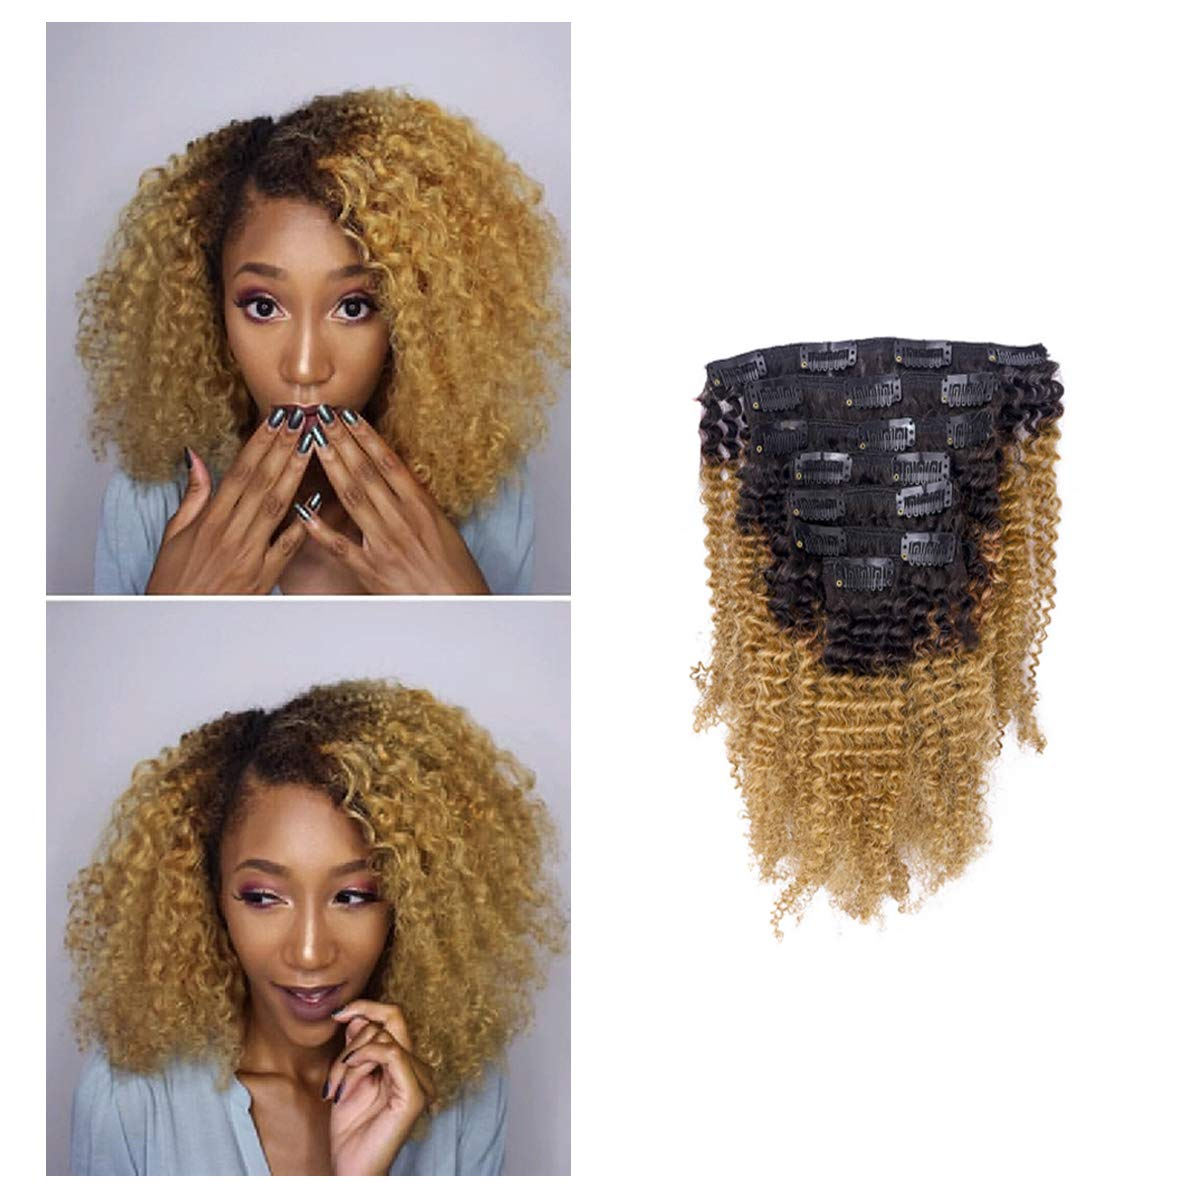 Kinkys Clip In Hair Extensions 4A 4B Afro Kinky Clip In Virgin Natural Hair Clip In Extensions Ombre Brown Blonde Natural Clip In Hair Extensions For Black Women Full Head Kinky Clip In # 1b/27 10Inch